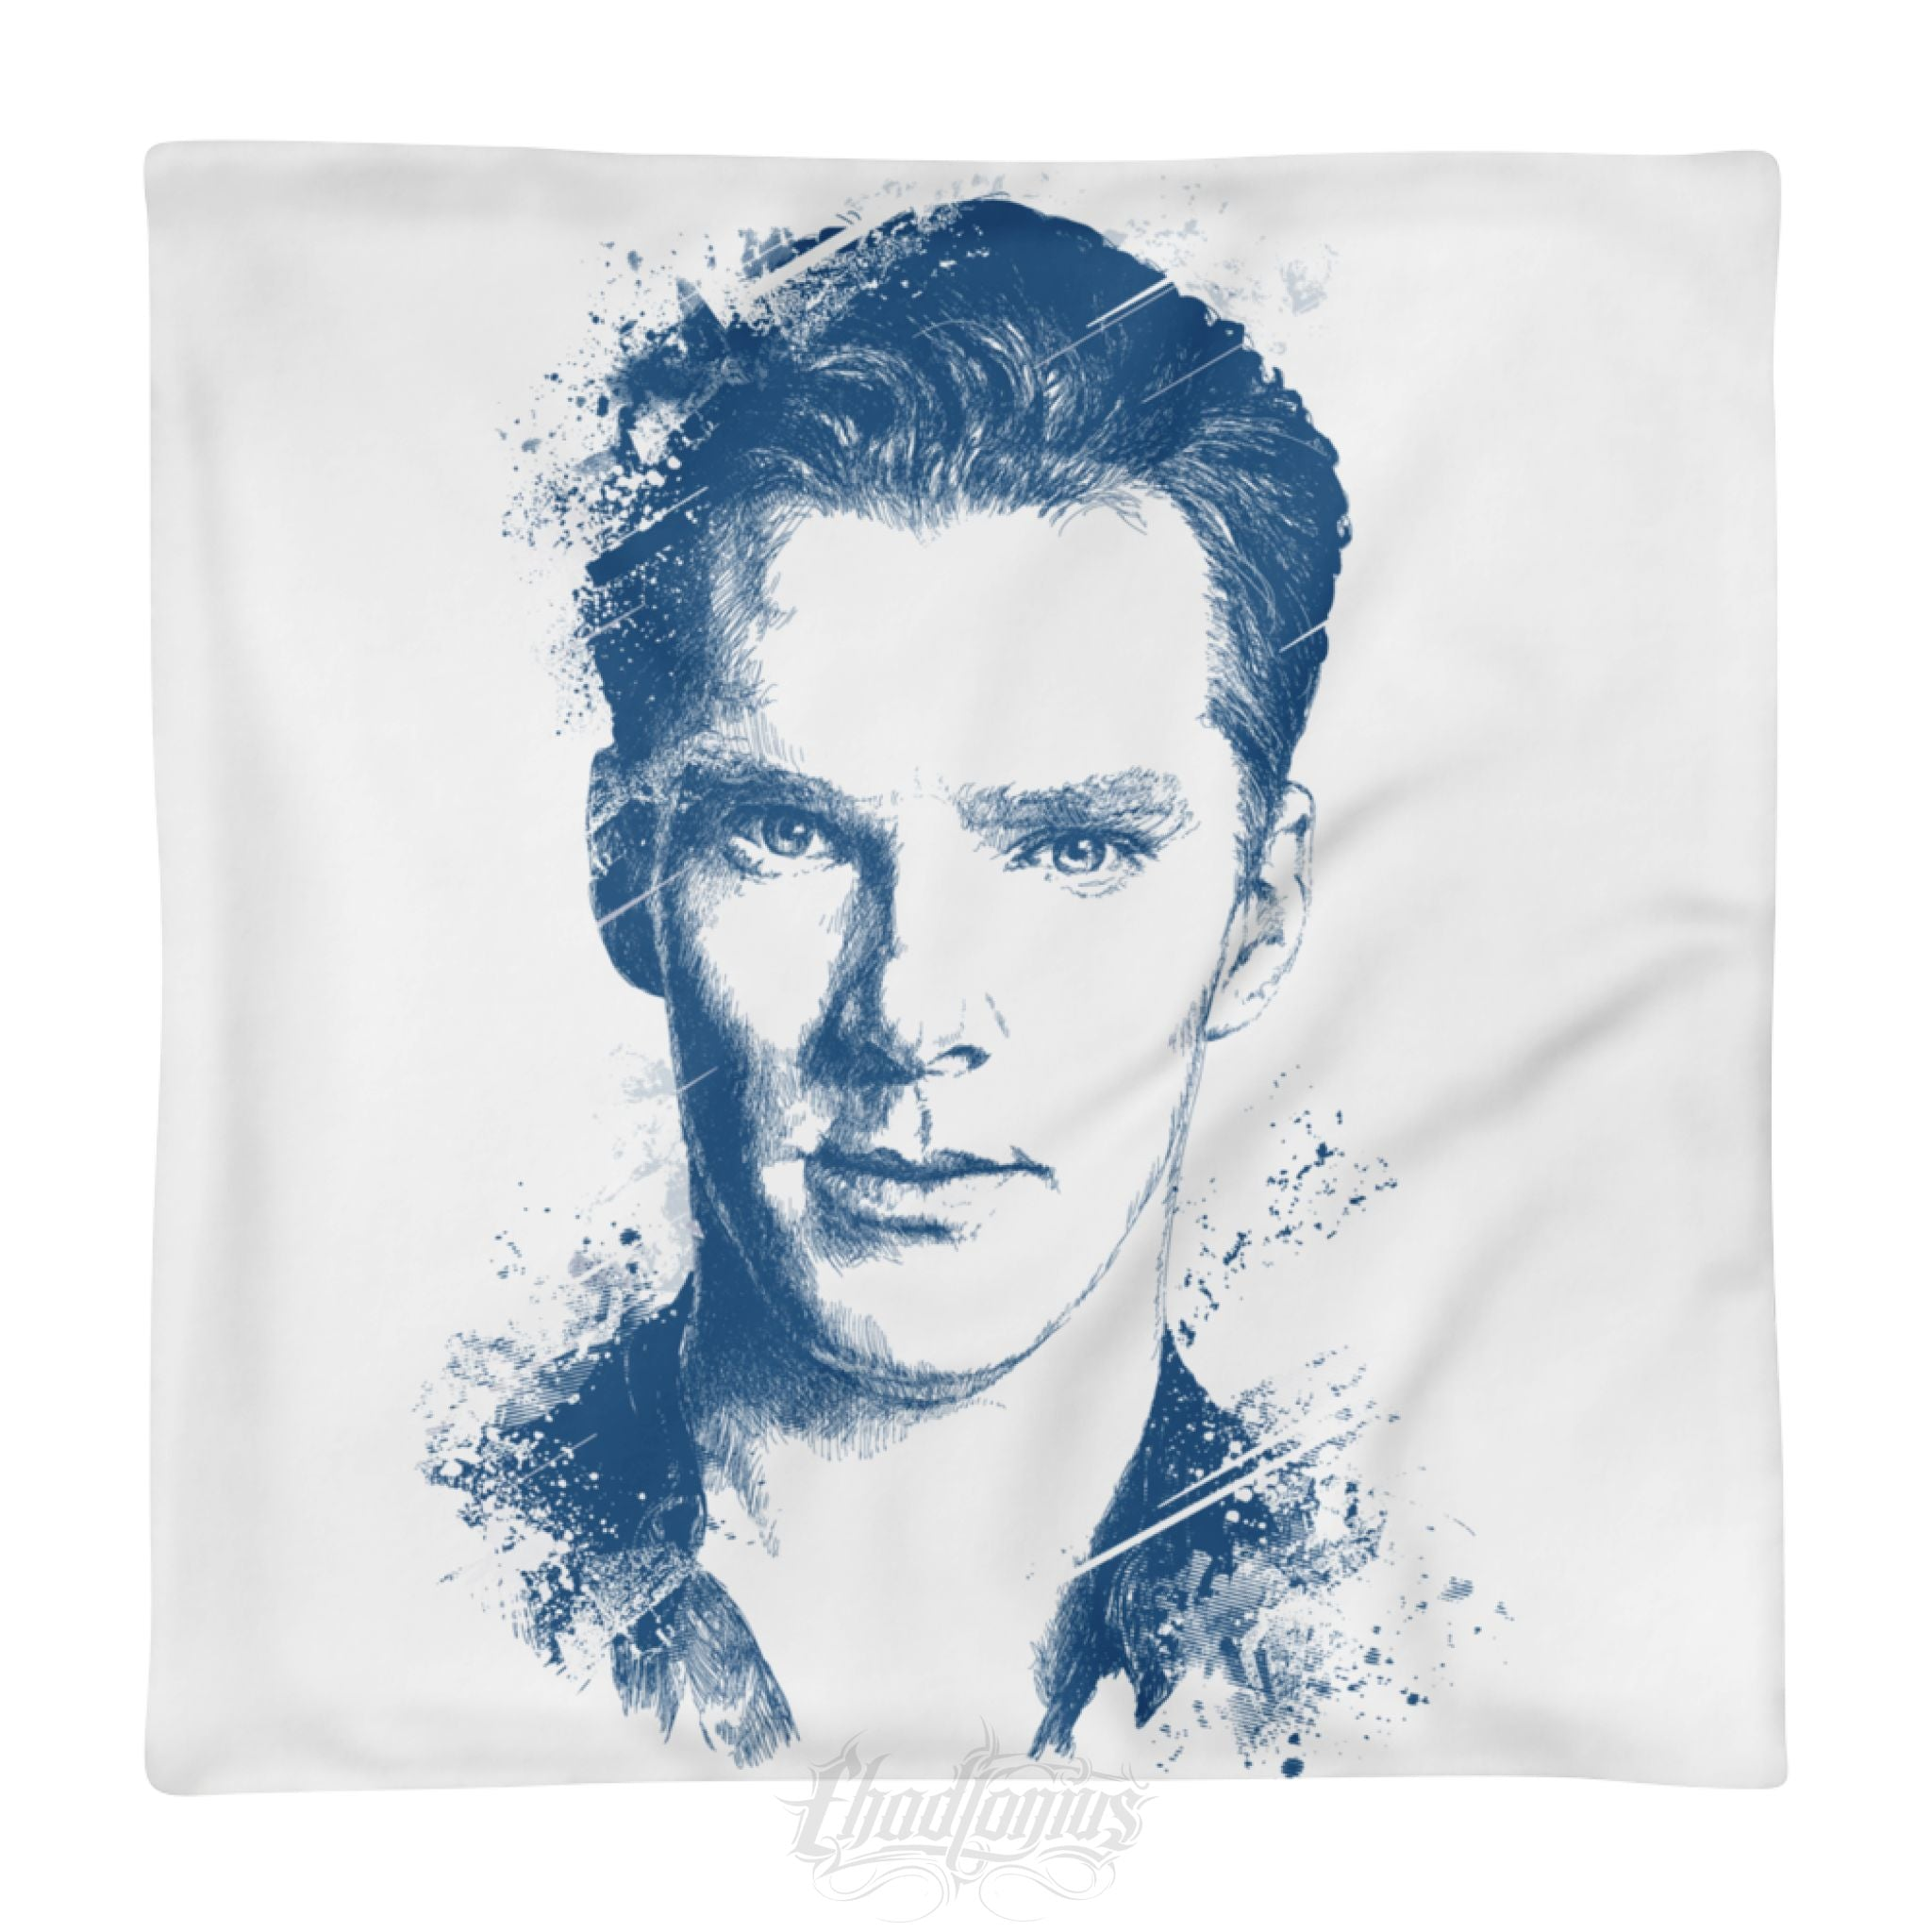 BENEDICT CUMBERBATCH - Square Pillow Case only